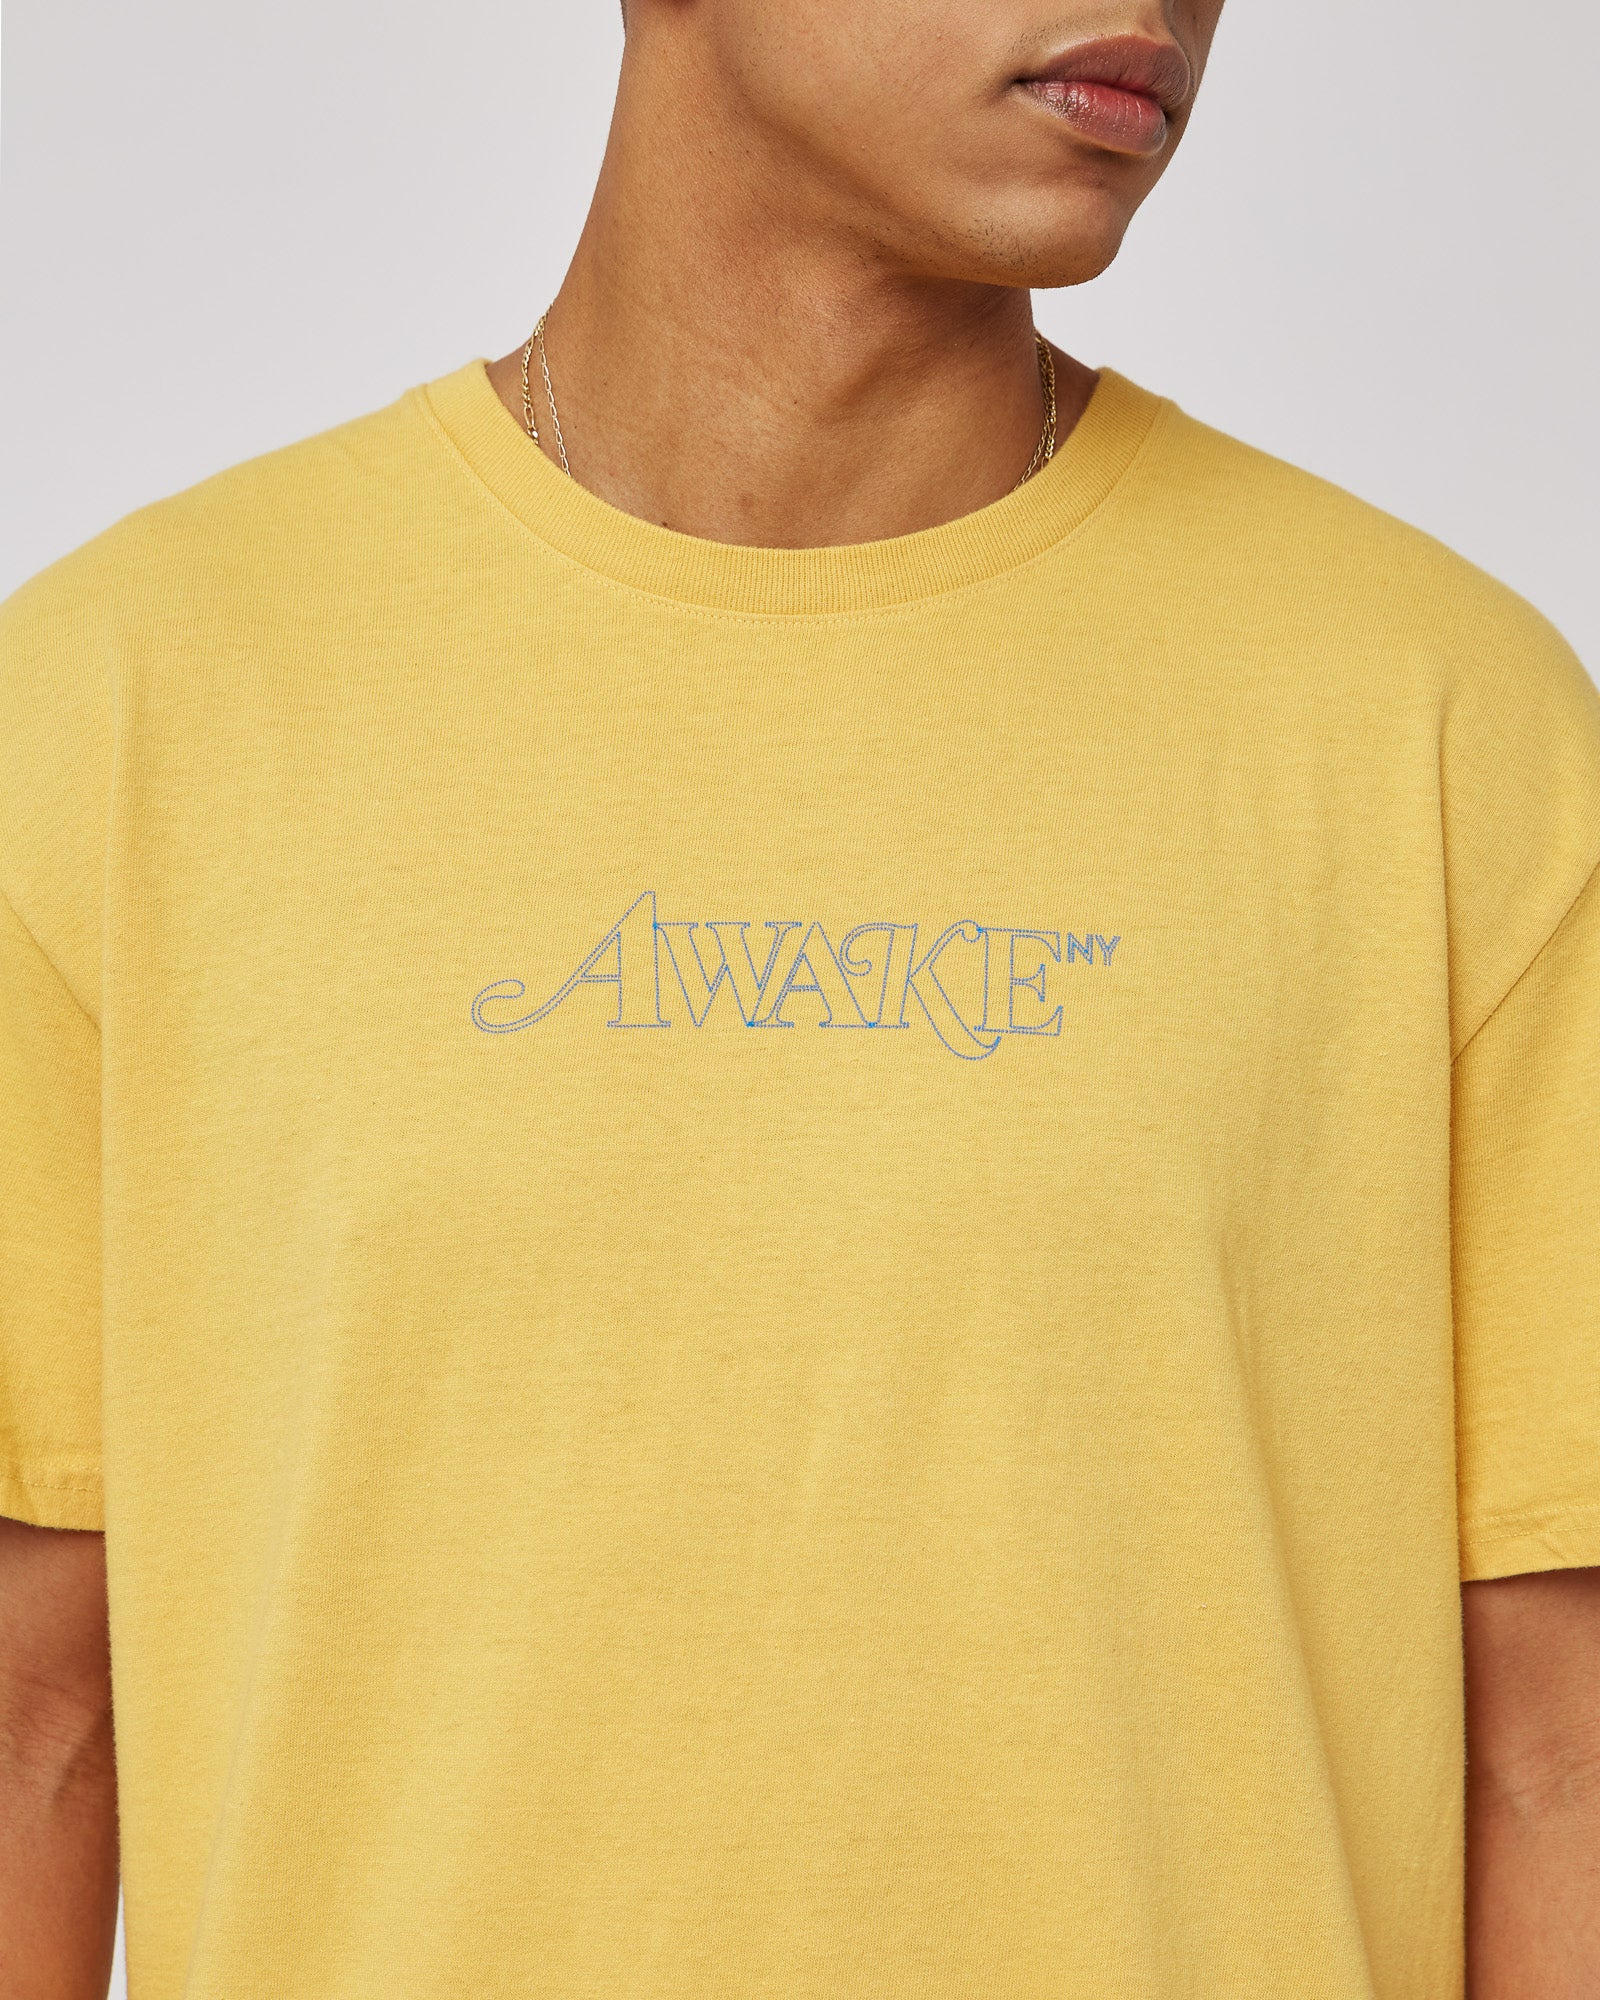 Classic Outline Logo T-Shirt in Mustard